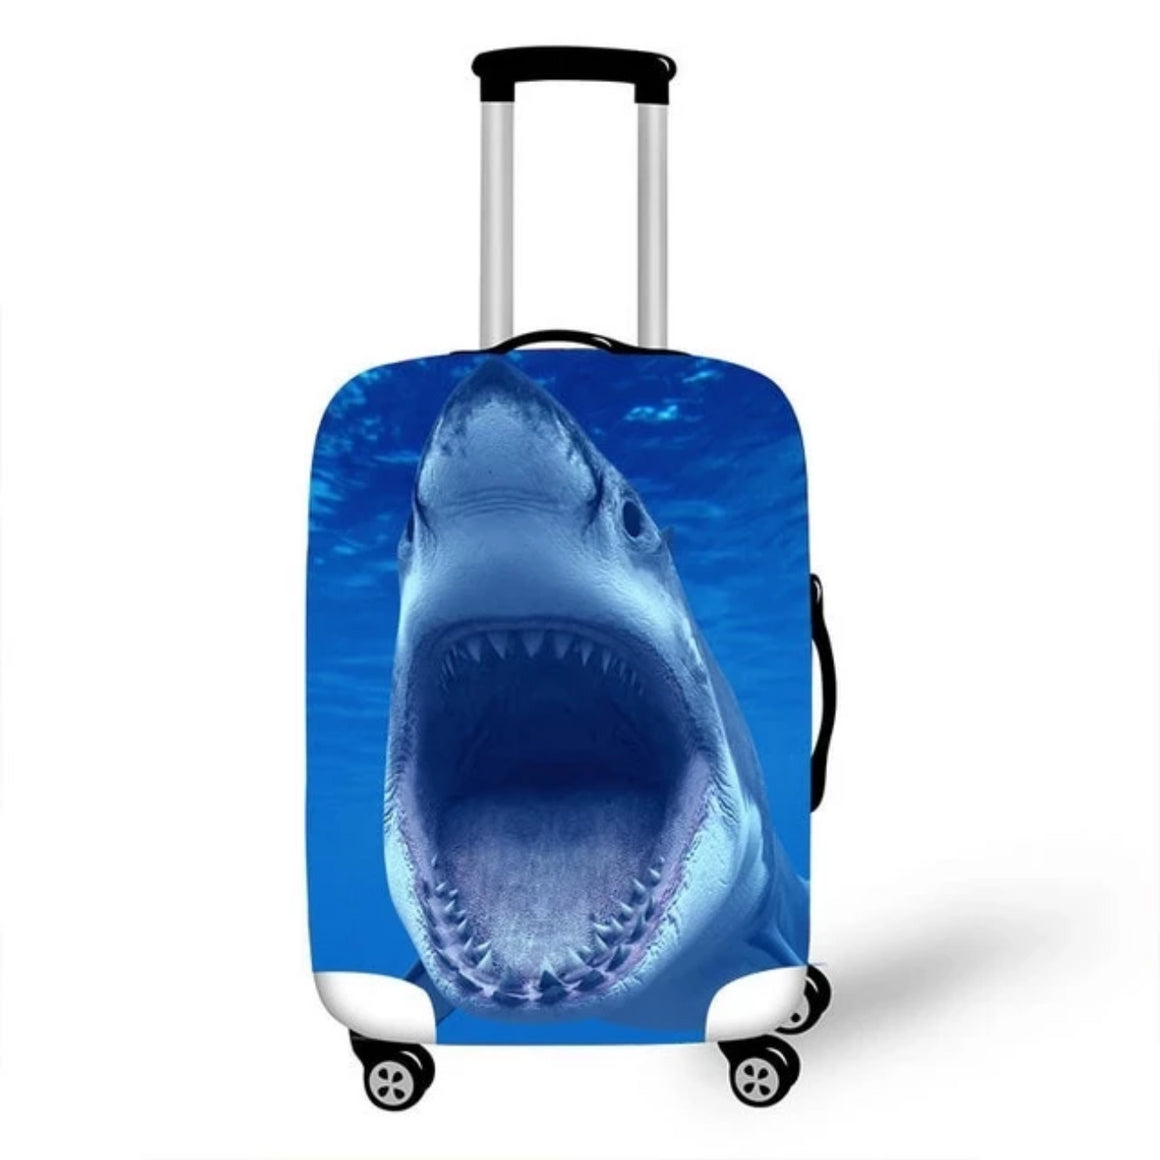 Fiercely Shark Thick Elastic Luggage Protective Covers With Zipper 18-28 Inch Case Animal Travel Baggage Protect Cover For Women